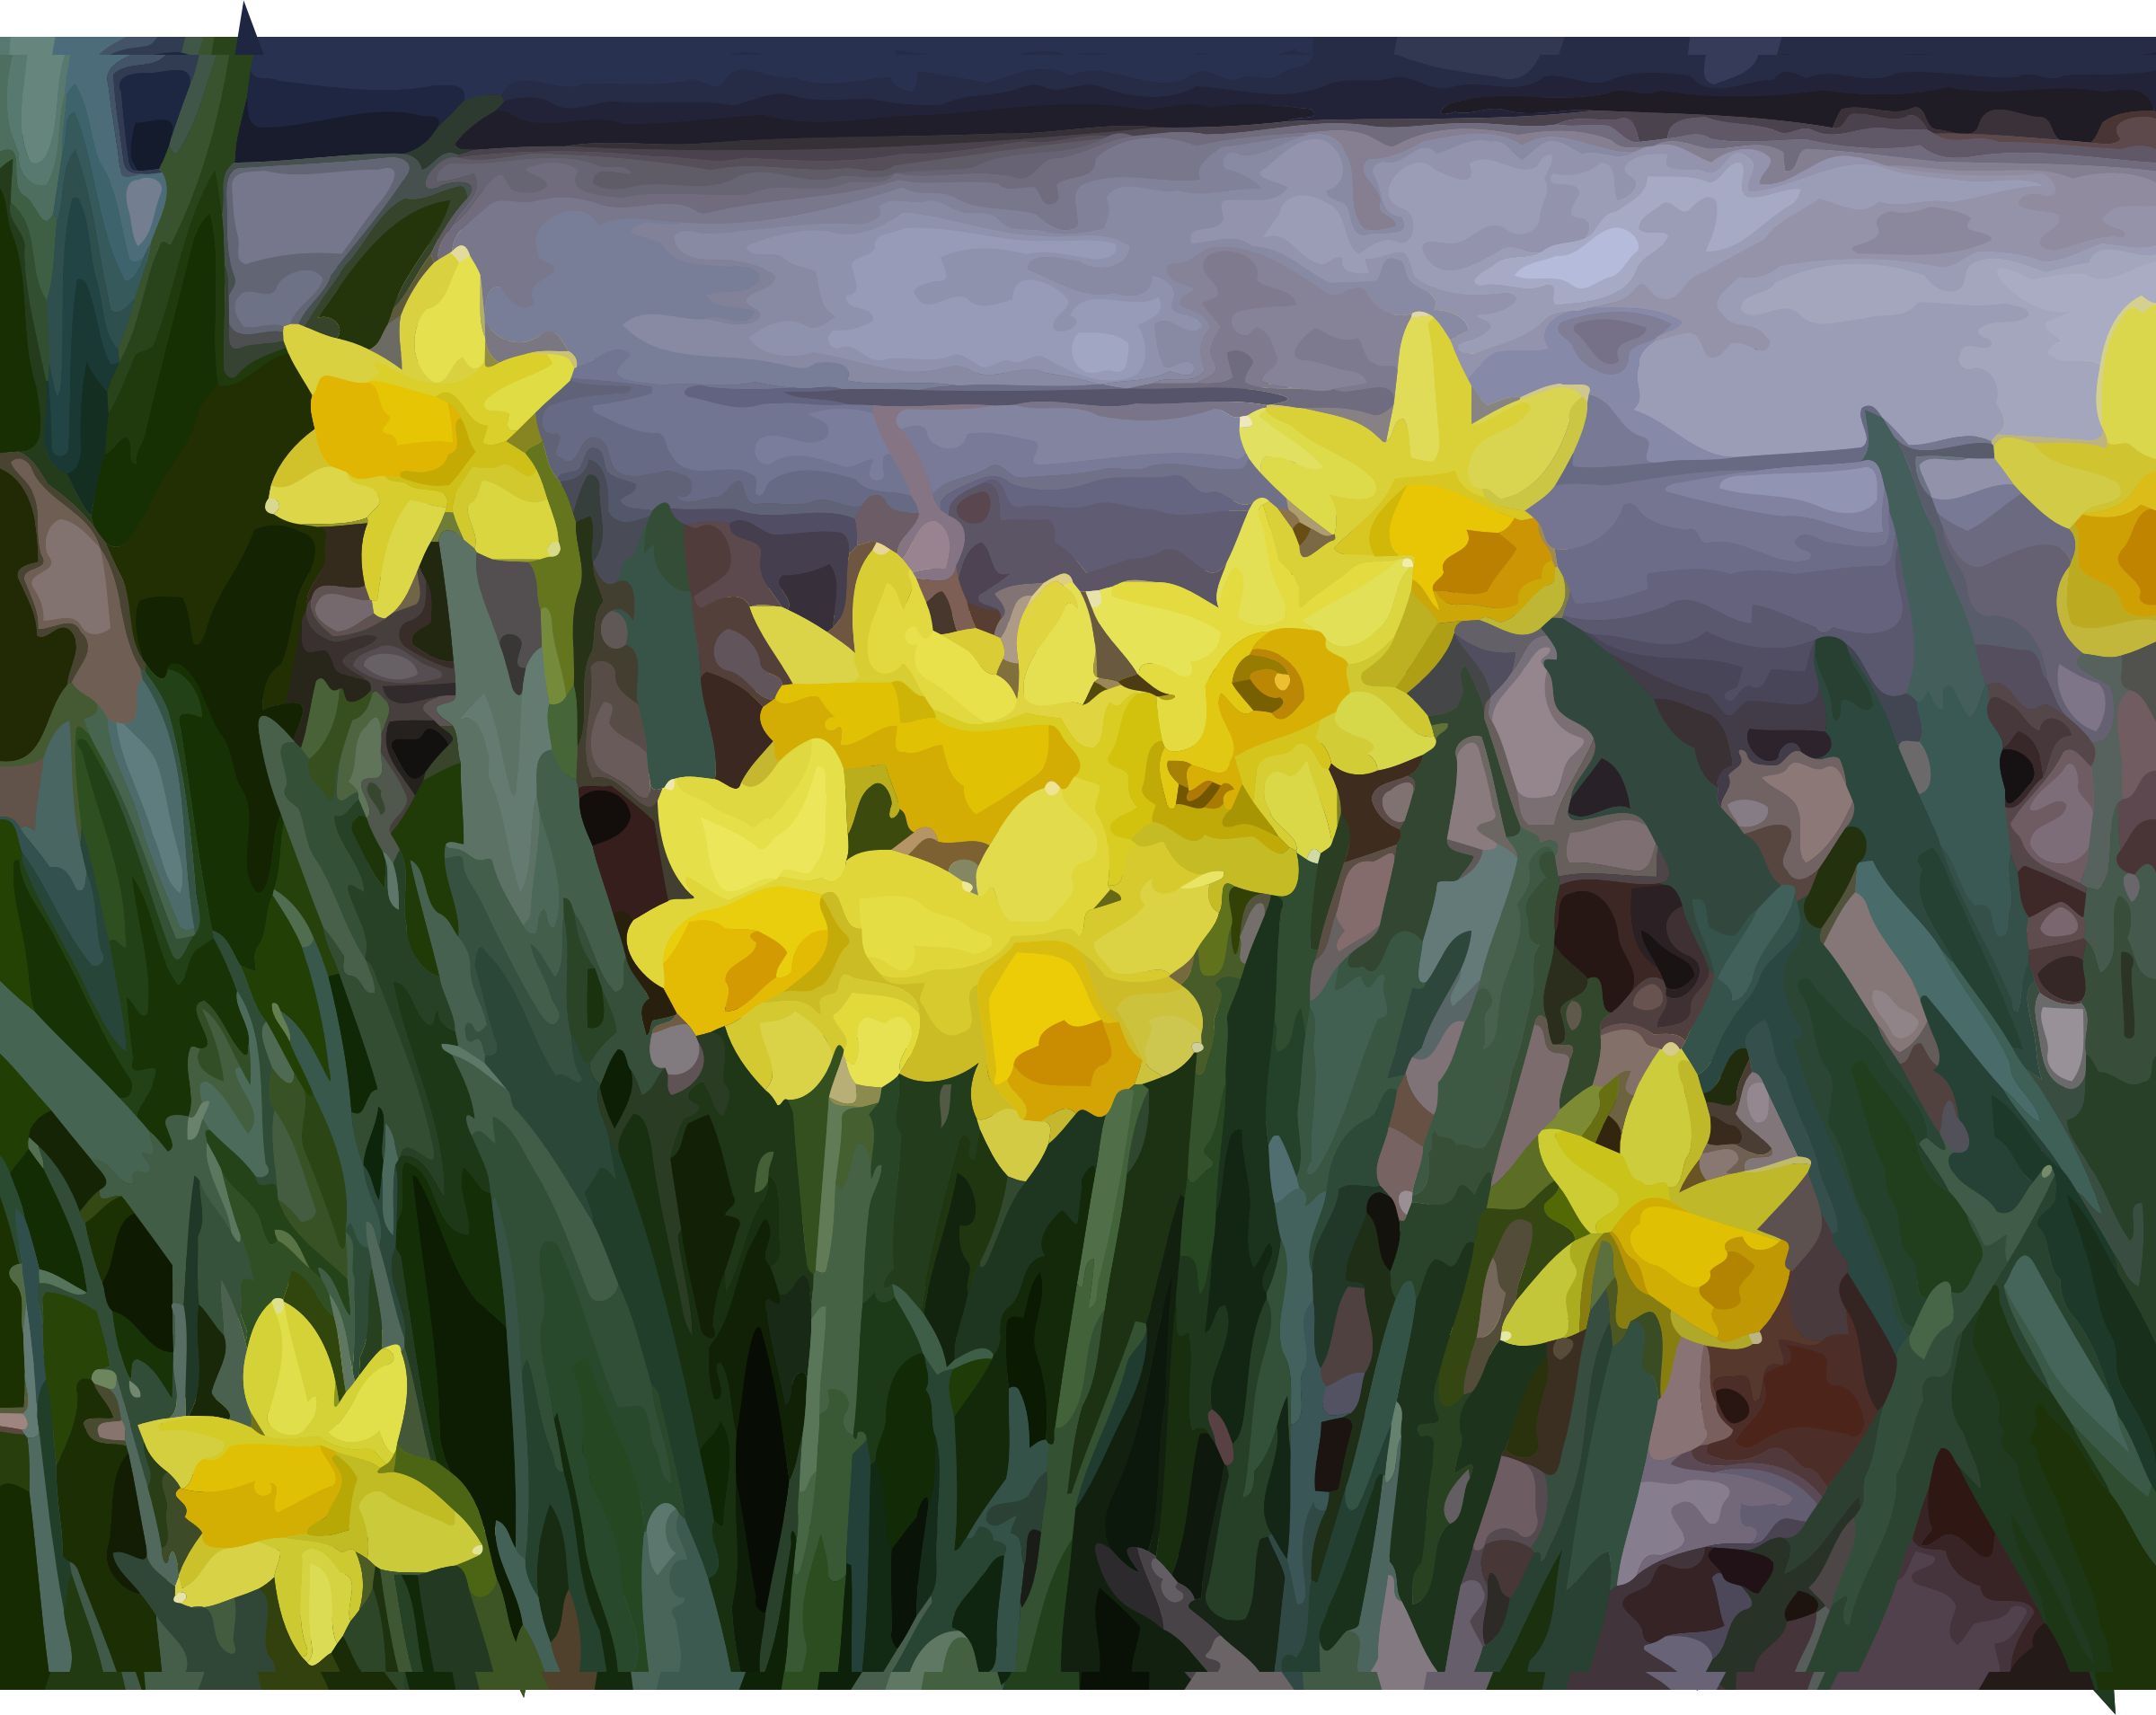 daffodils-15 by datteber